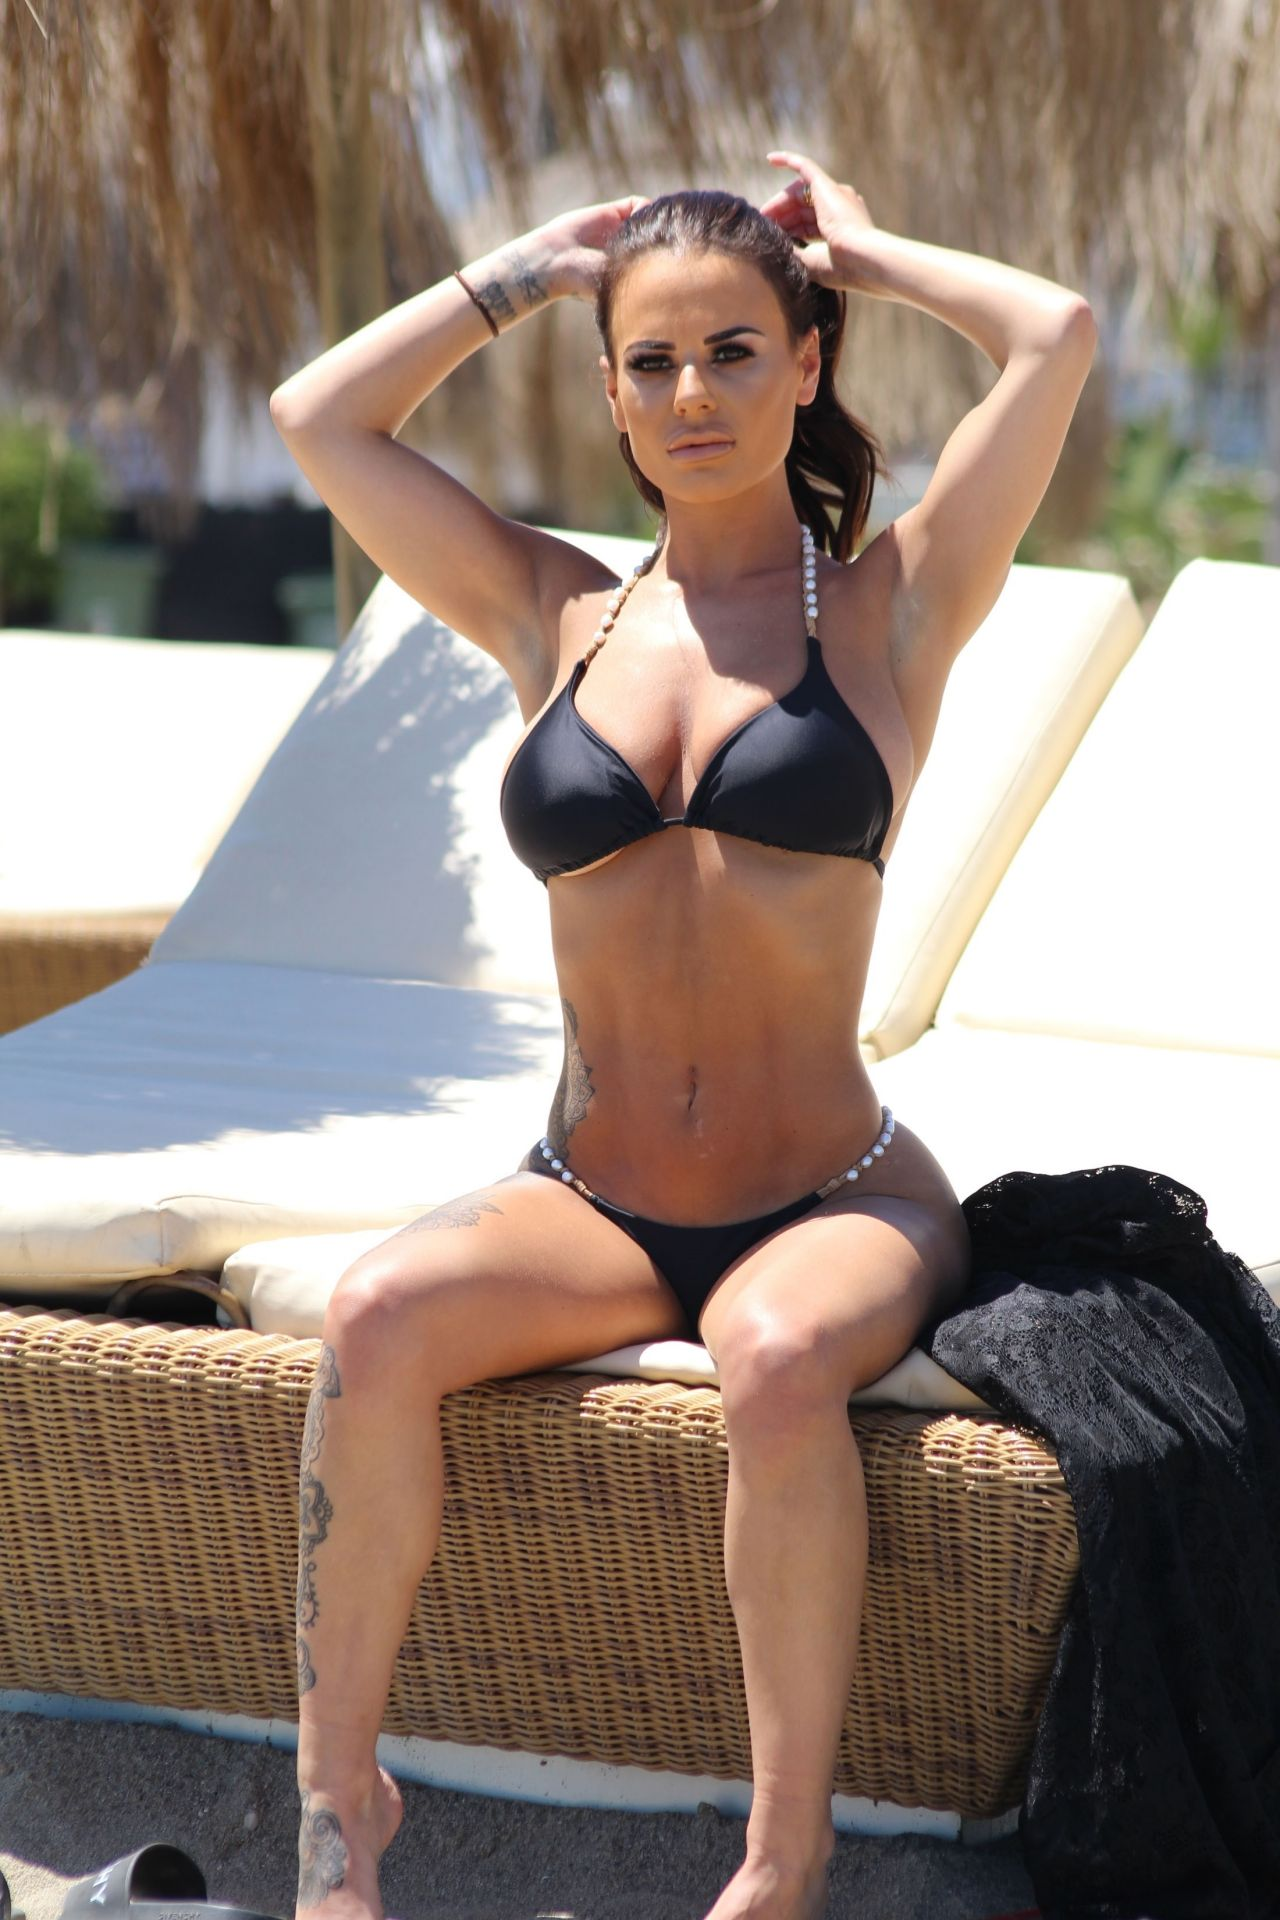 Bikini Chantelle Connelly naked (88 photo), Topless